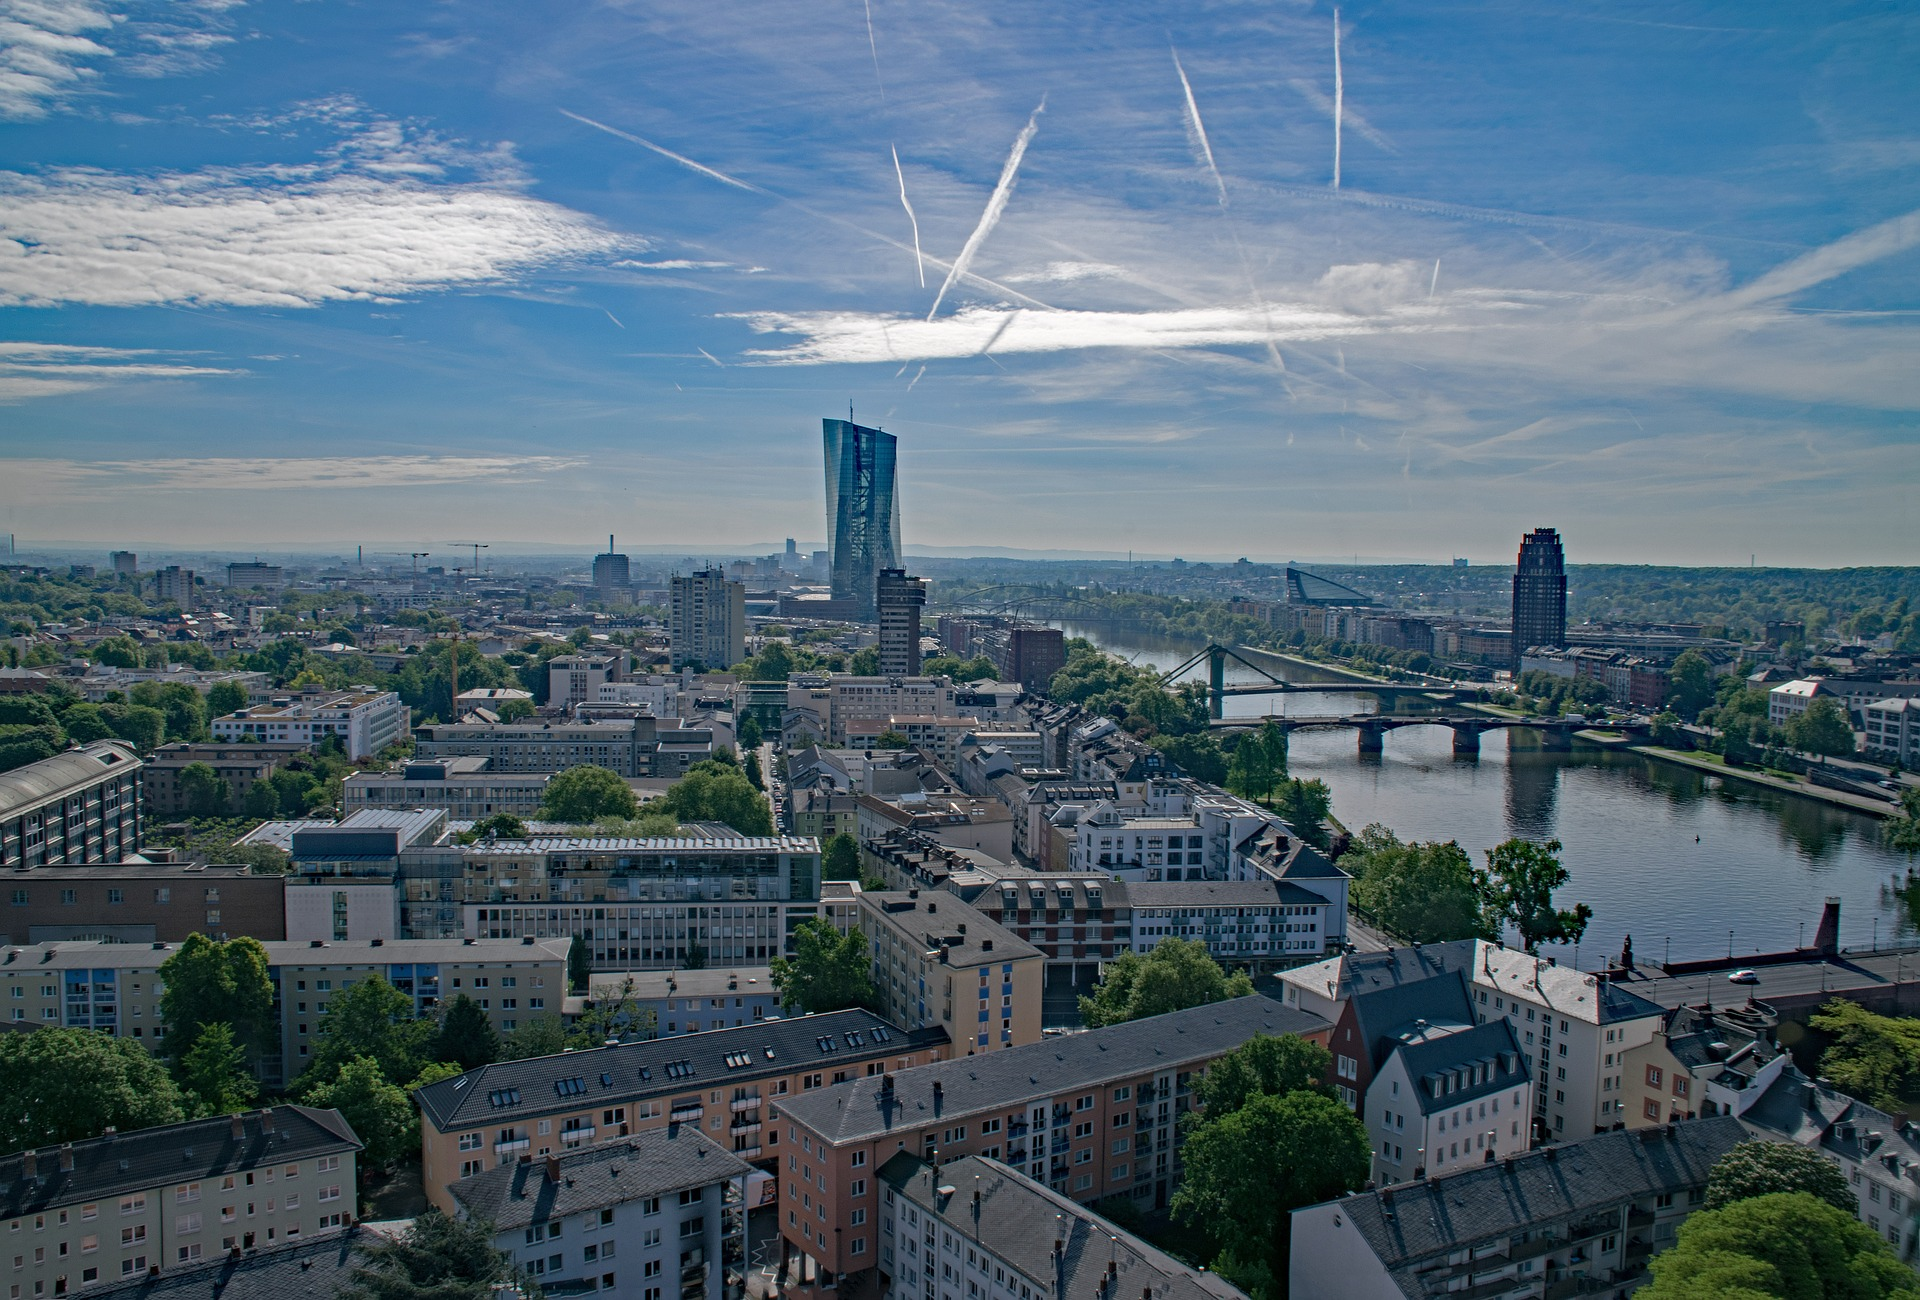 View of Frankfurt, Germany with European Central Bank tower